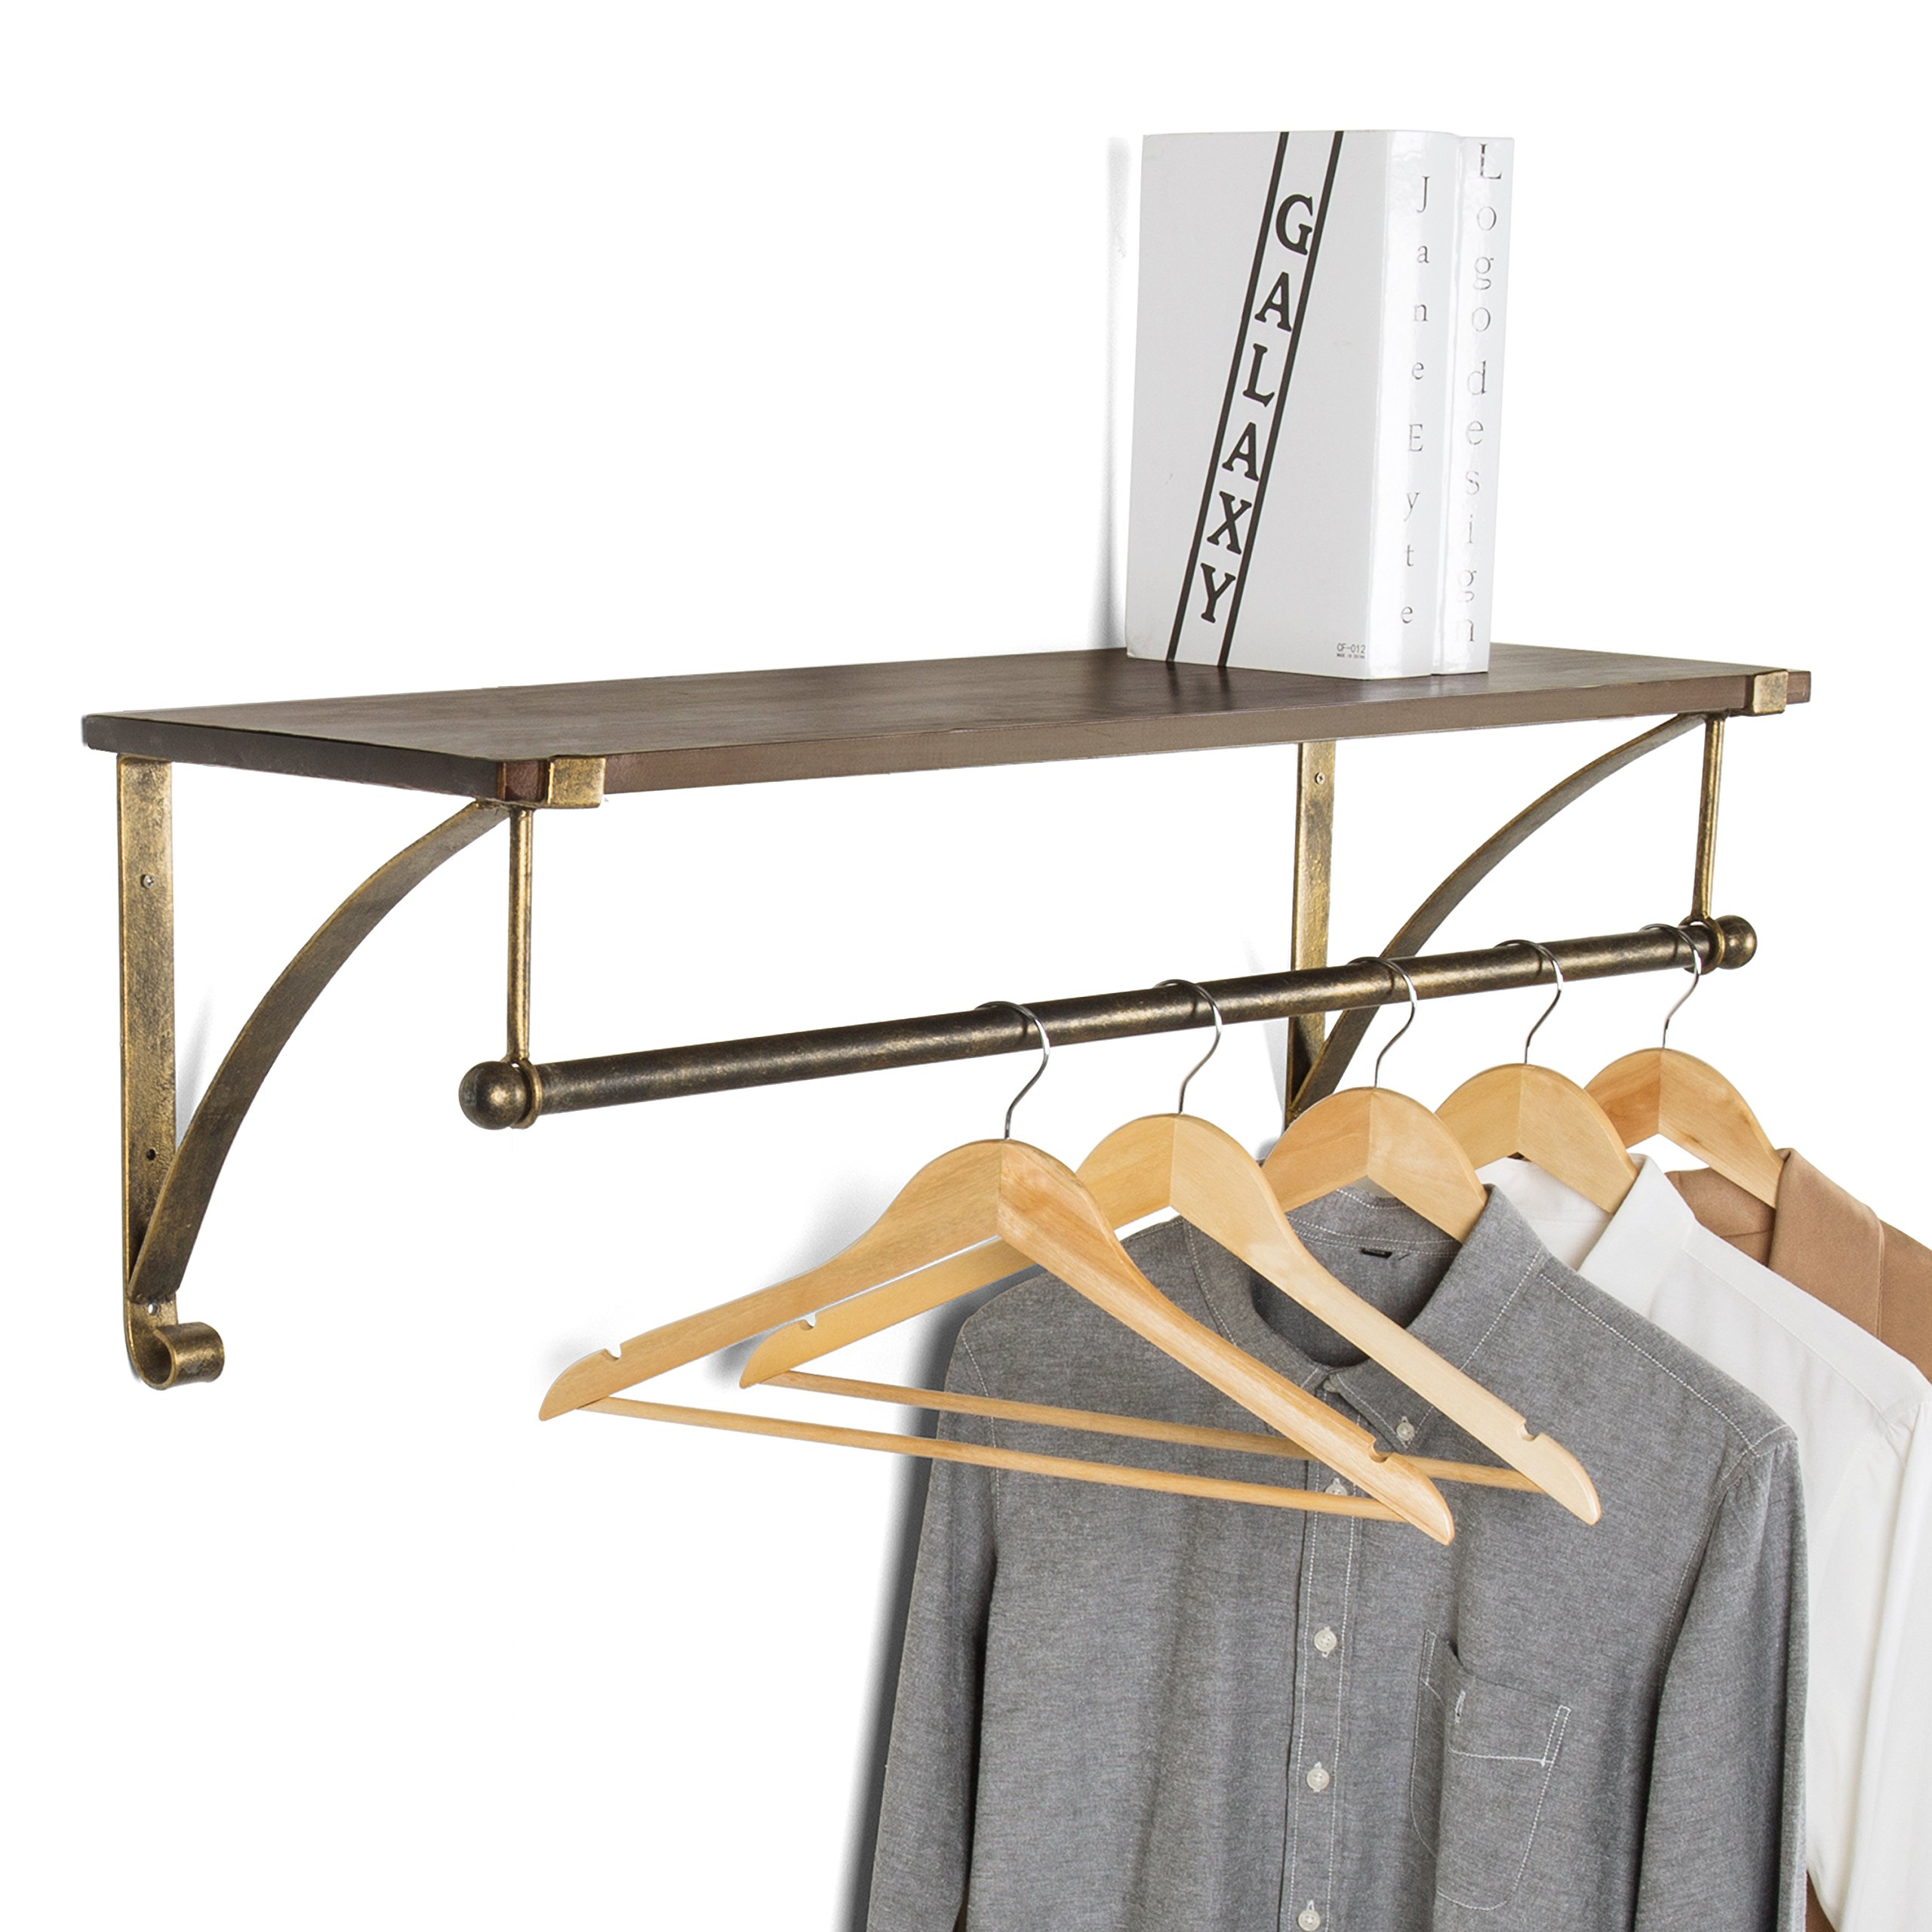 MyGift Wood & Antique Bronze-Tone Metal Wall Mounted Floating Shelf with Garment Hanger Rod by MyGift